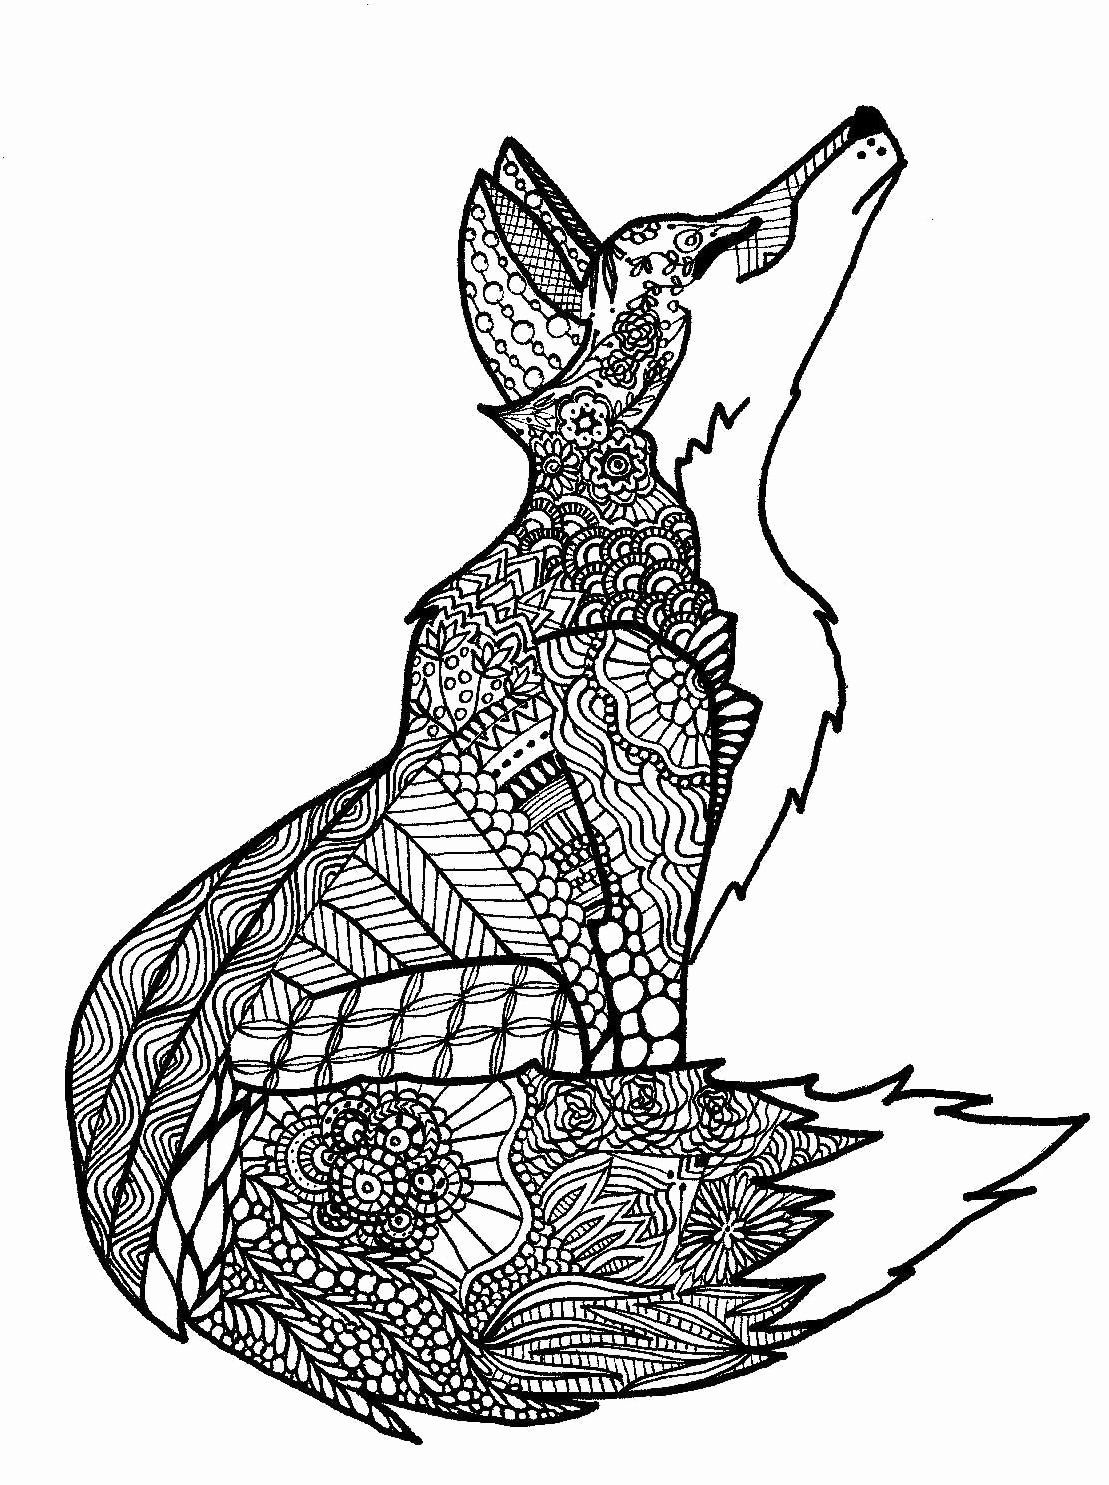 Zentangle Animal Coloring Pages Fresh Kearney Woman S Zentangle Coloring Book Stems From Her Zentangle Animals Animal Coloring Pages Blog Colors [ 1485 x 1109 Pixel ]